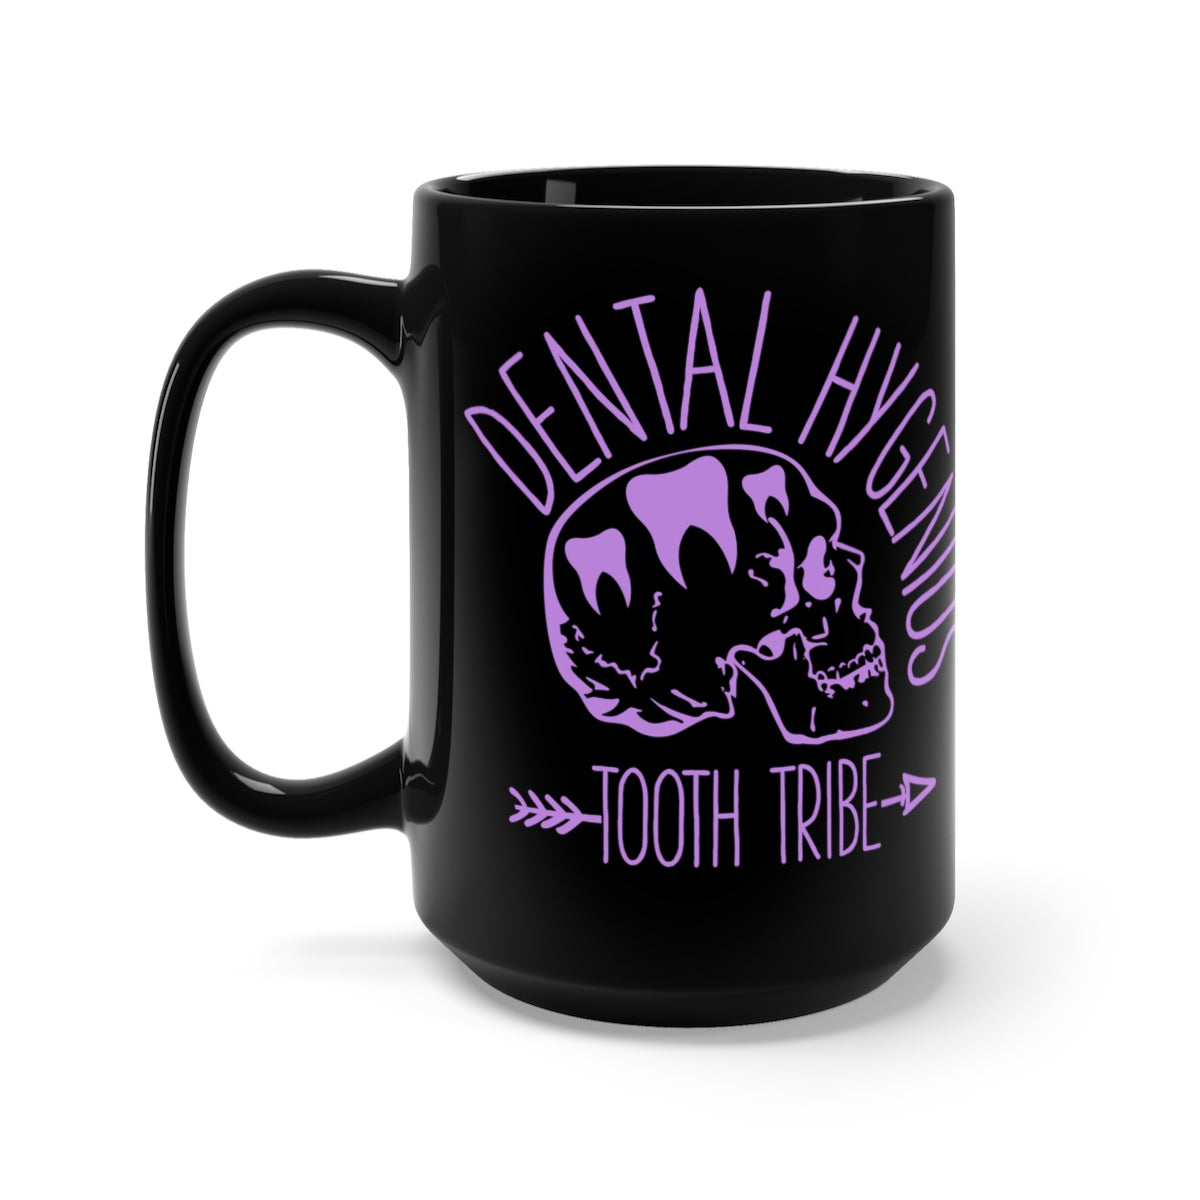 Dental Hygenius Tooth Tribe Black Mug 15oz